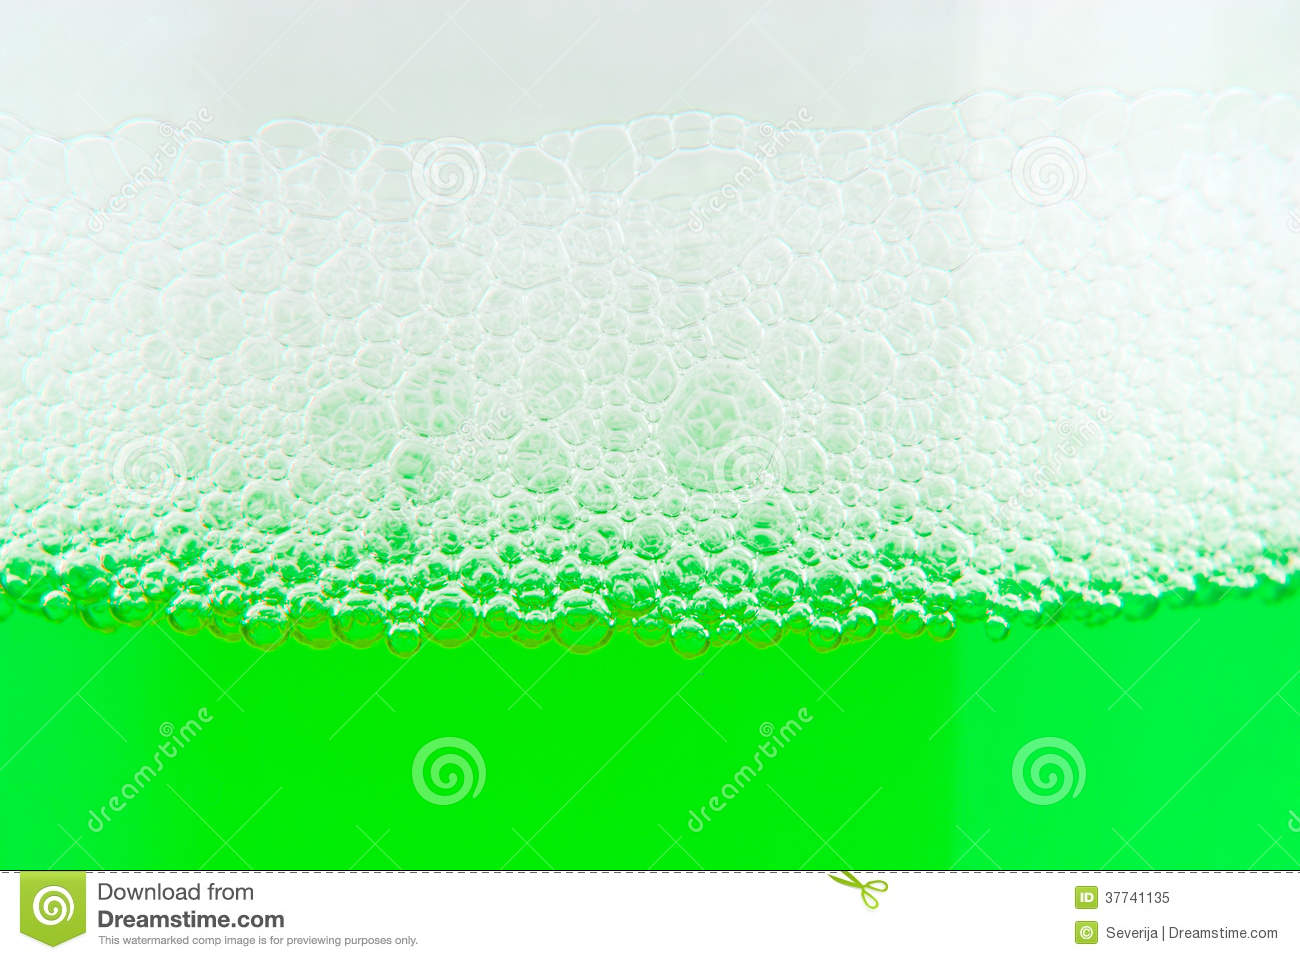 suds background download - photo #26